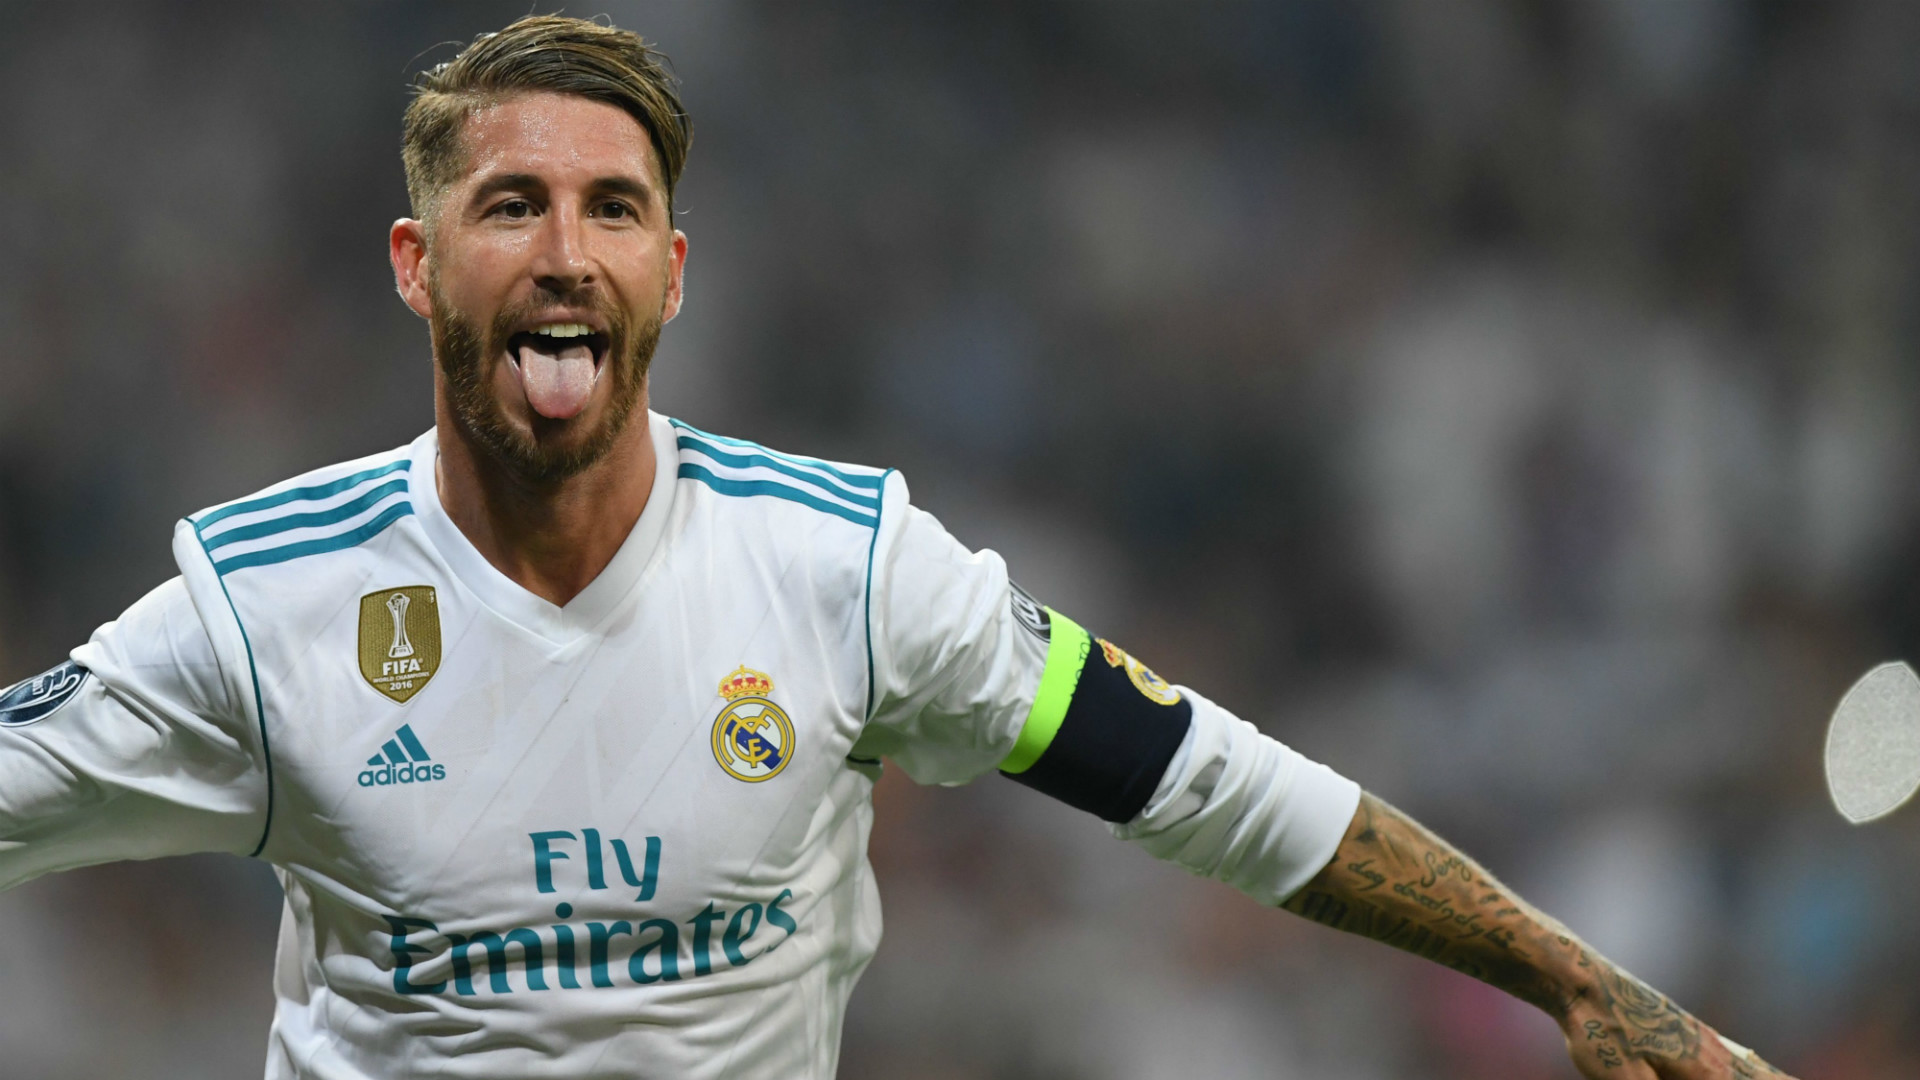 Sergio ramos 2018 wallpaper 82 images - Sergio madrid ...